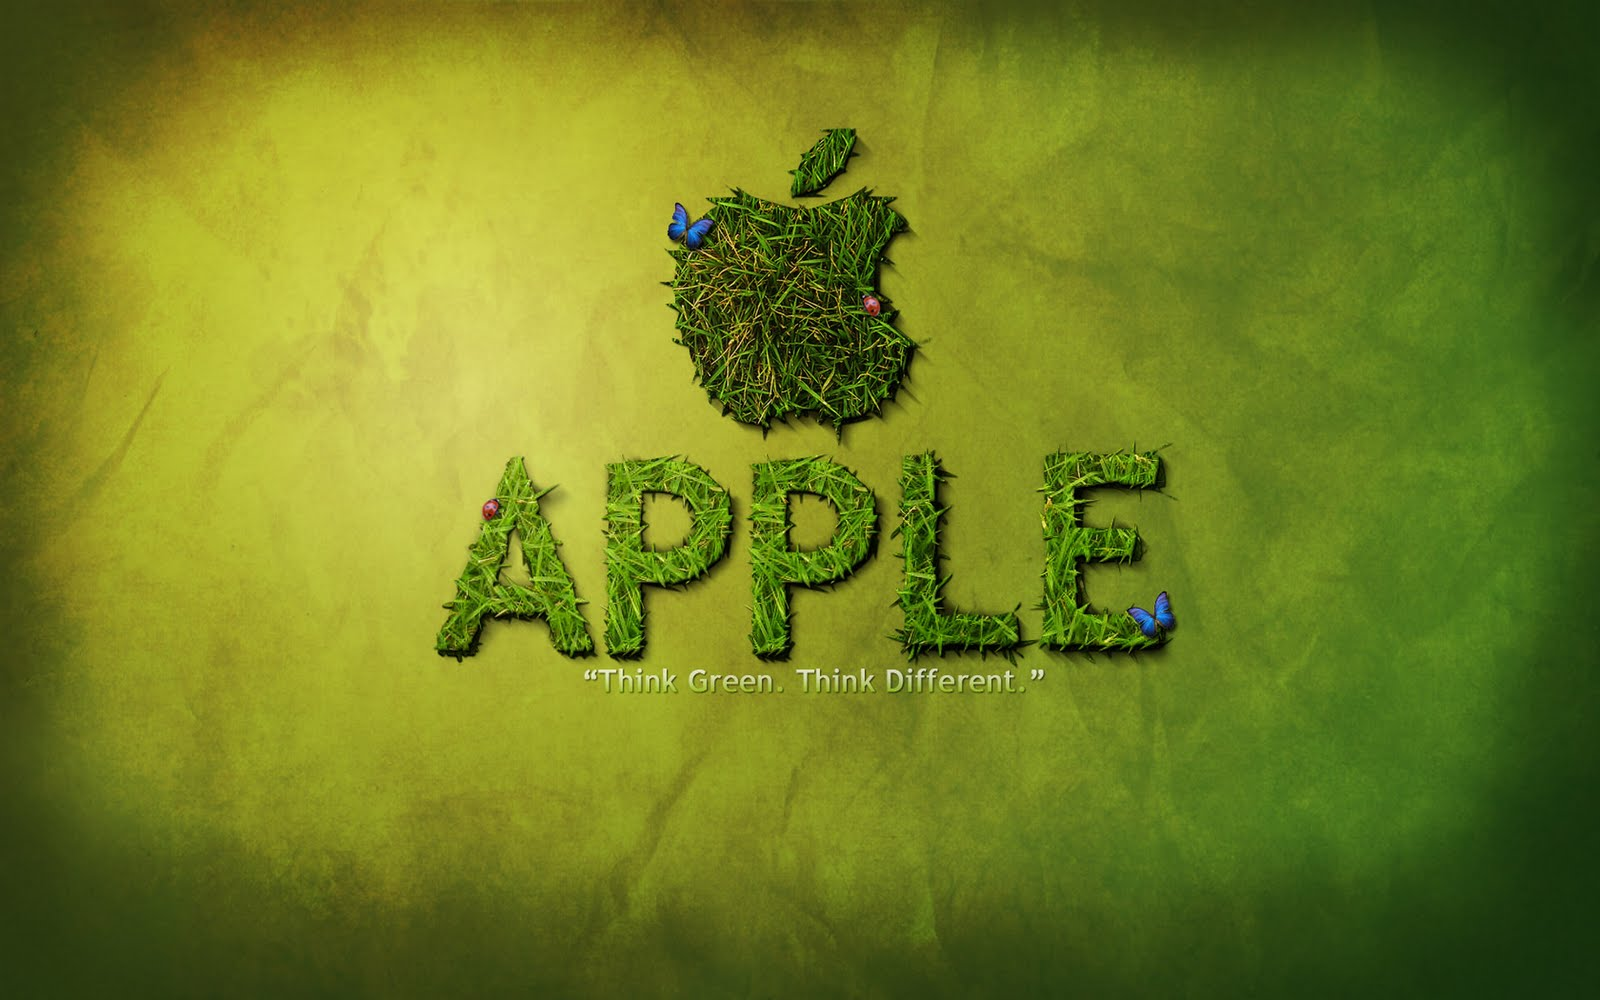 http://1.bp.blogspot.com/-37CLYdJRa2I/Tf8i09E5YLI/AAAAAAAAIwc/E0p4p1pSm0o/s1600/New+Apple+Wallpaper+HD.jpg